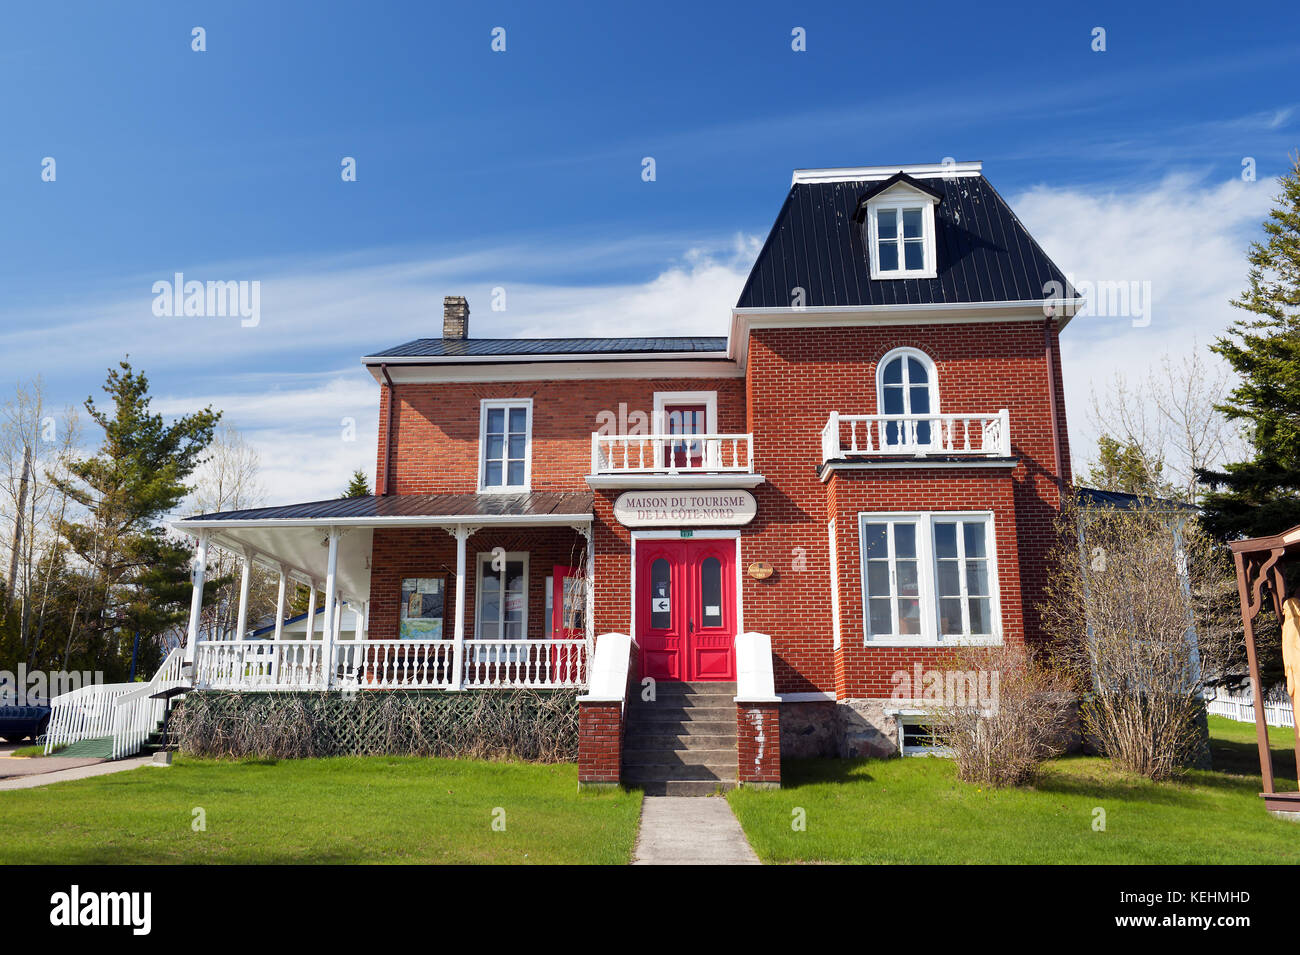 Tourisme stockfotos tourisme bilder alamy - Office de tourisme quebec ...